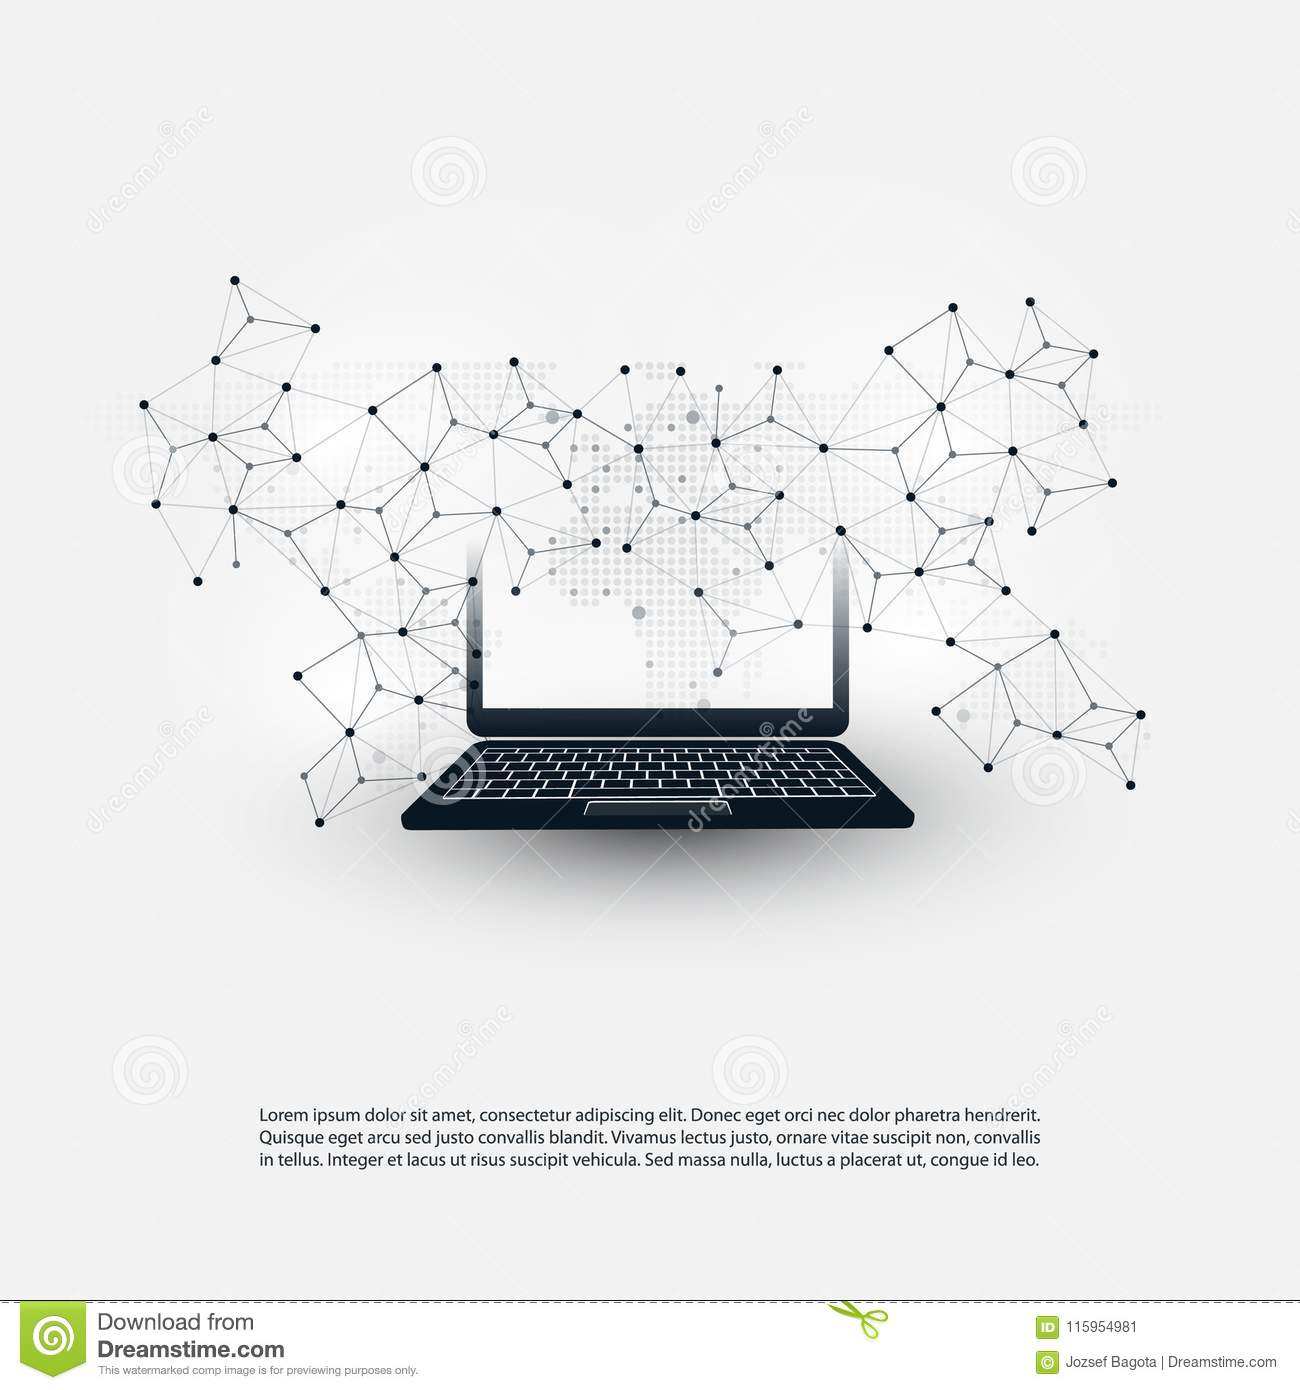 Abstract Cloud Computing And Global Network Connections Concept Connection Diagram Design With Laptop Computer Wireless Mobile Device